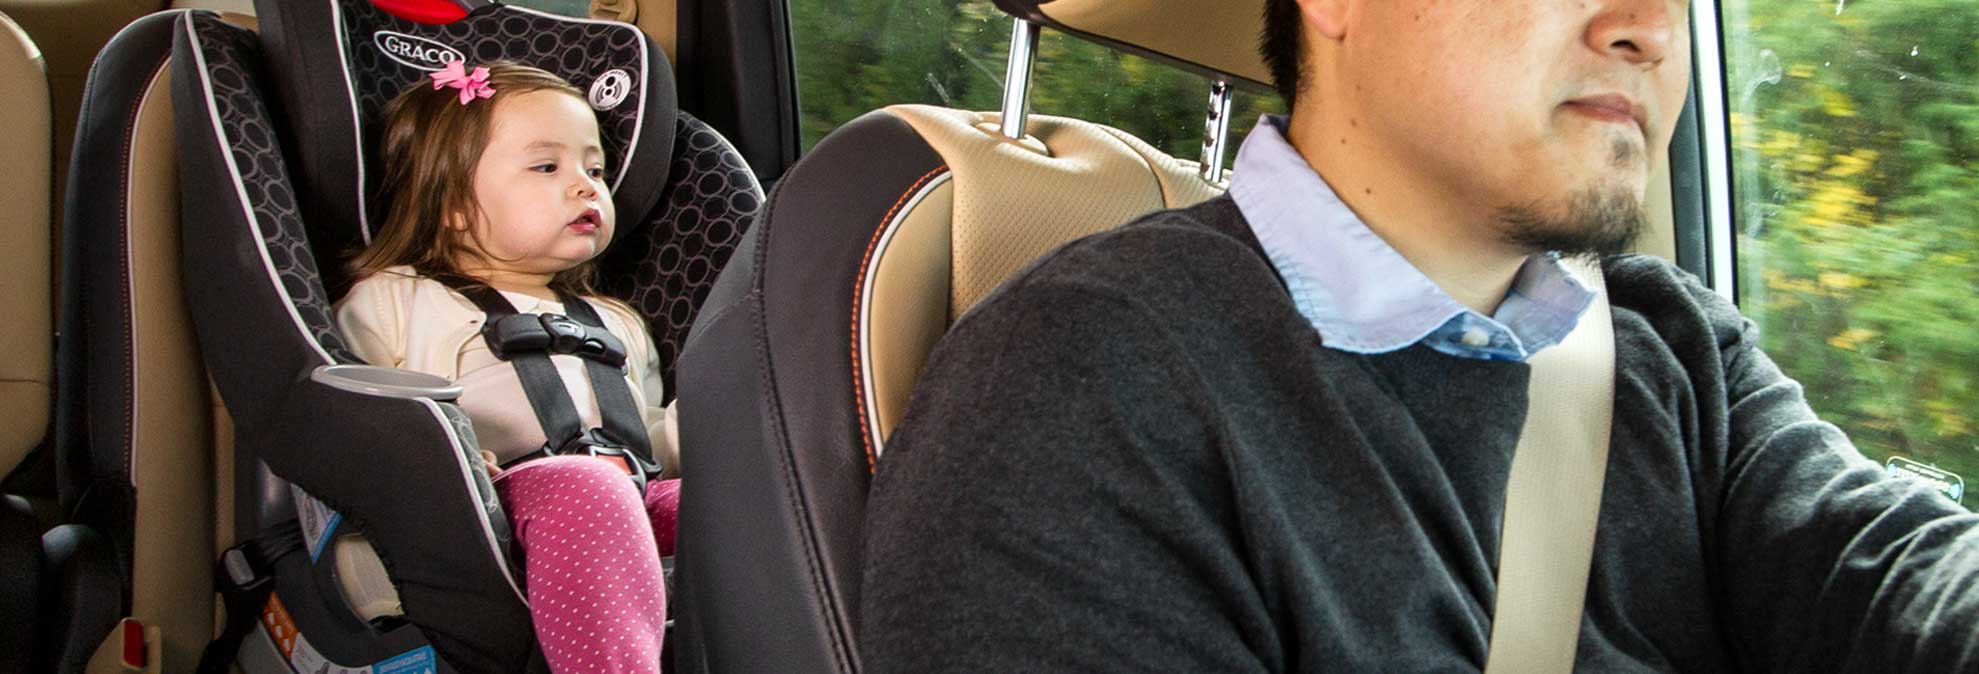 a5ab668bc7535 Best Car Seat Buying Guide - Consumer Reports